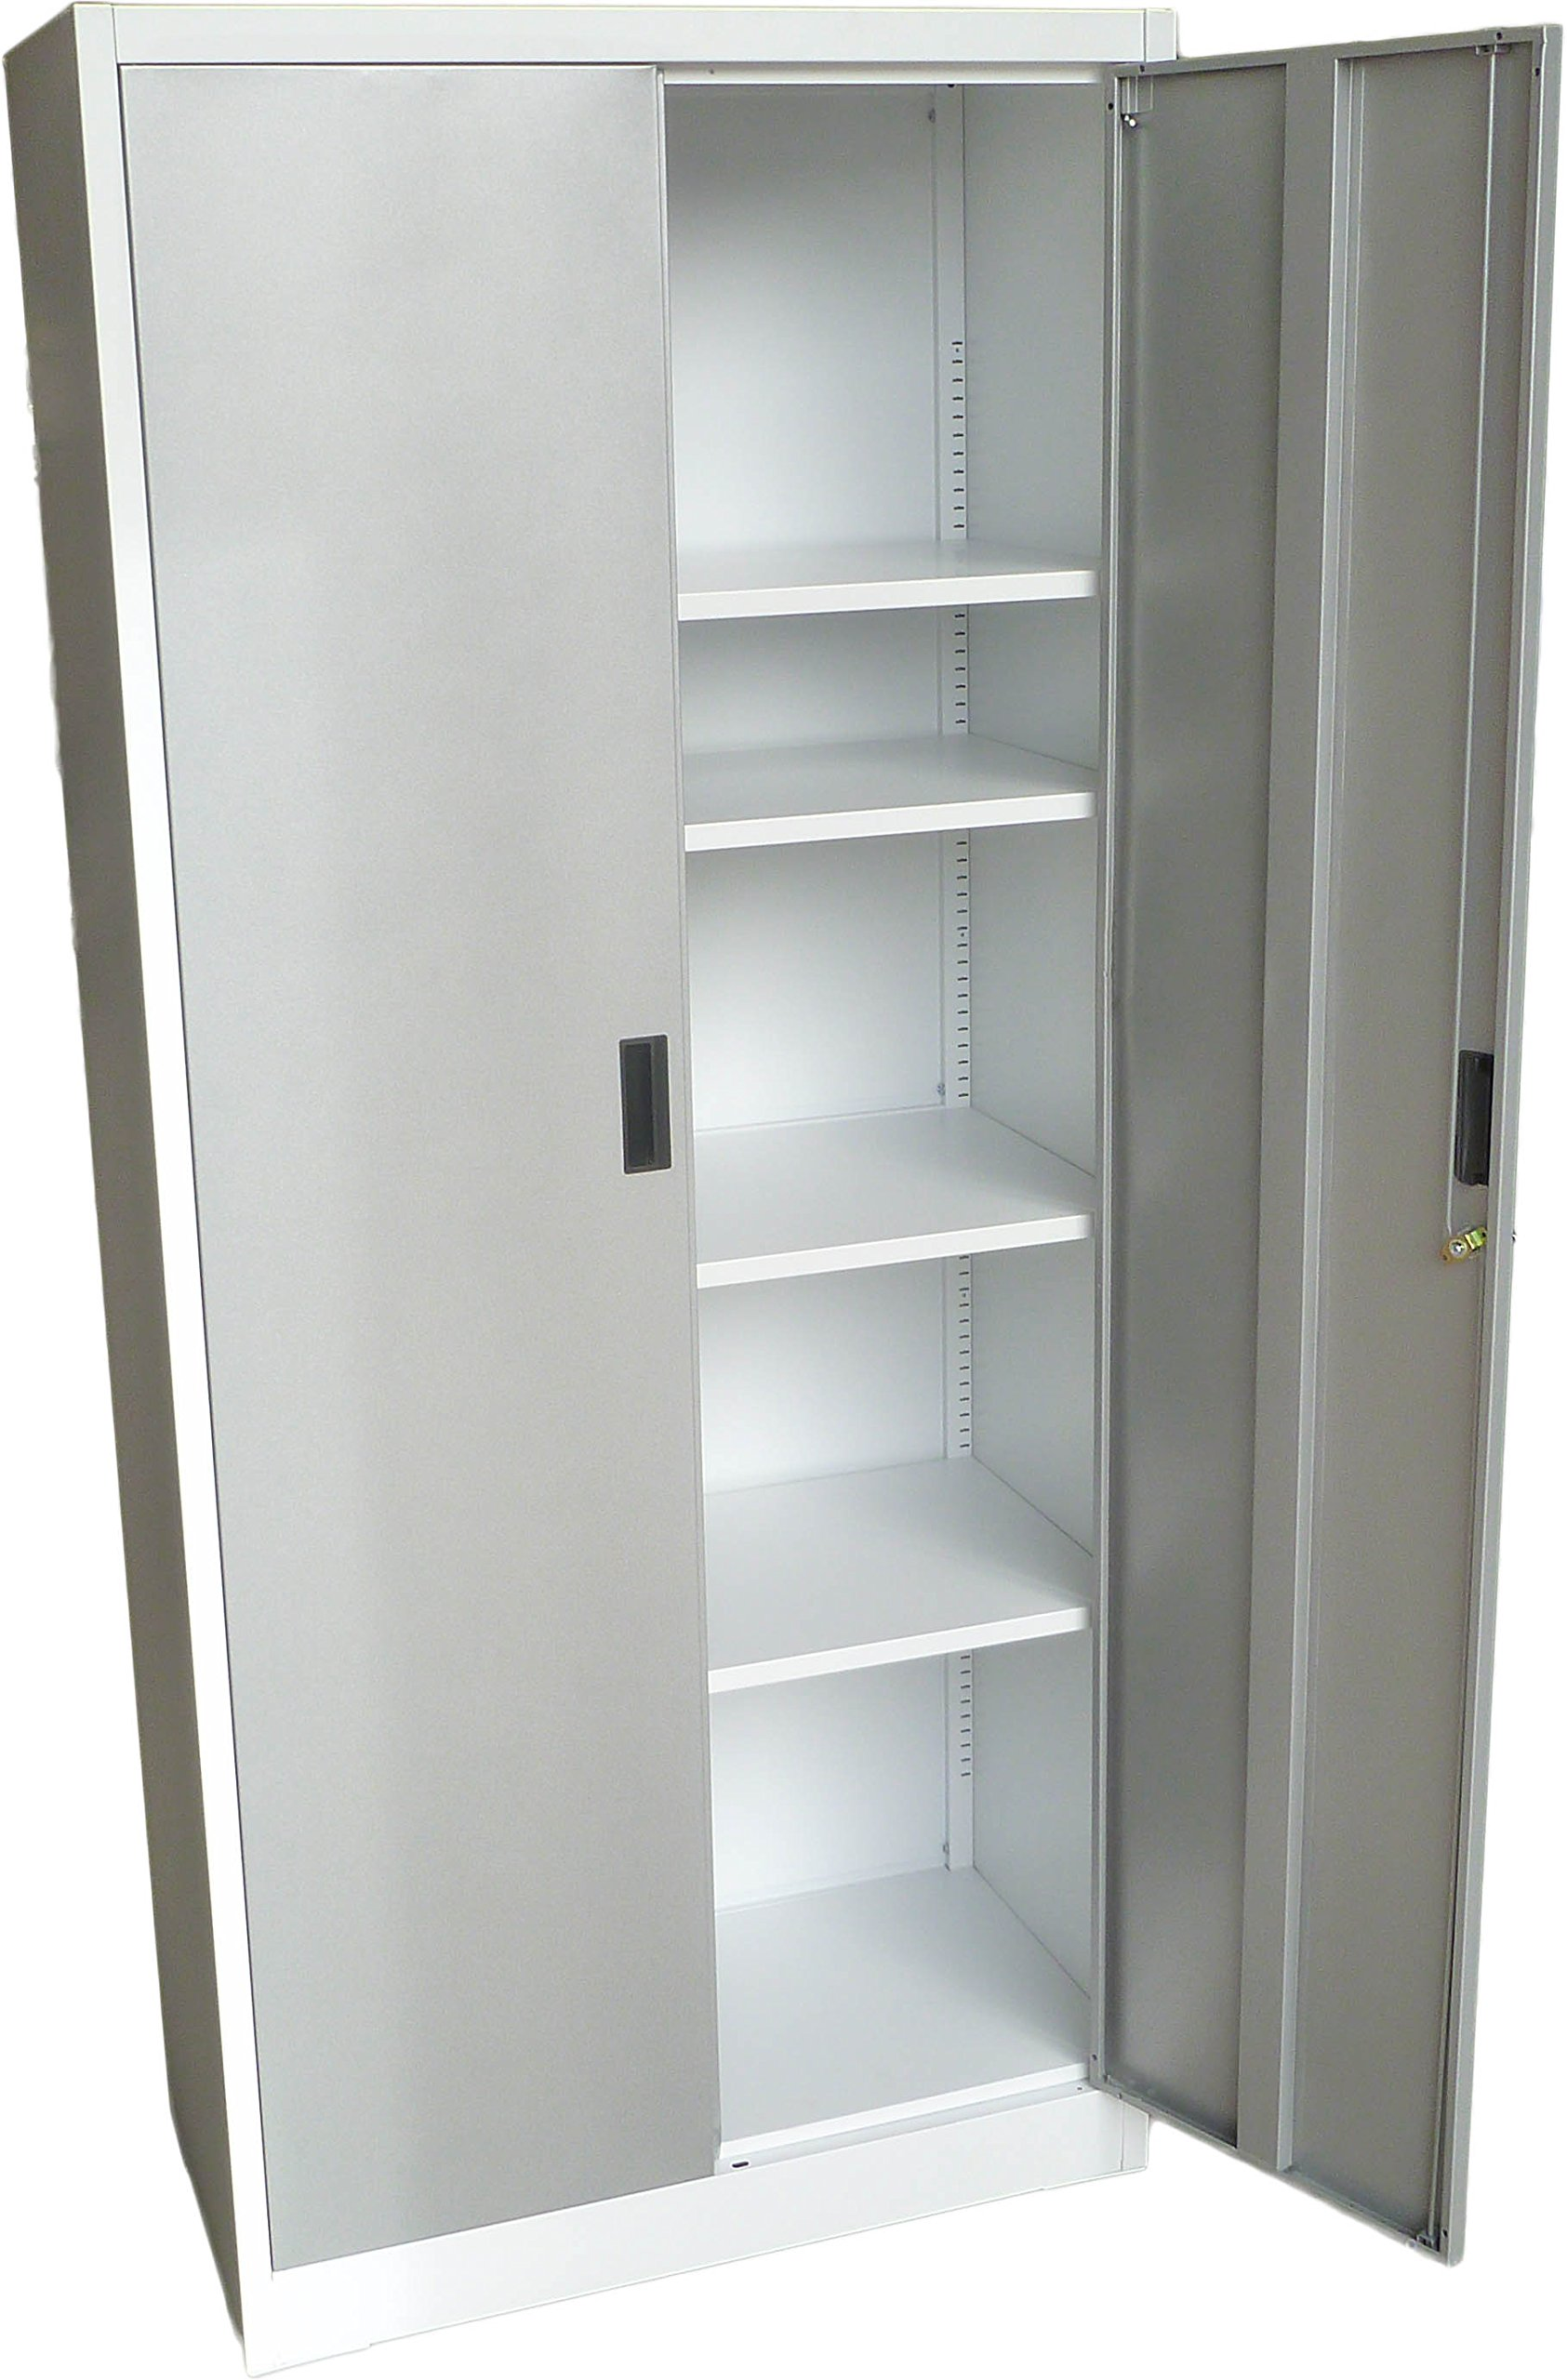 Fedmax Steel Storage Cabinet 71'' Tall, Lockable Doors and Adjustable Shelves, (Choose Color) 70.86'' Tall x 31.5'' W x 15.75'' D (White)